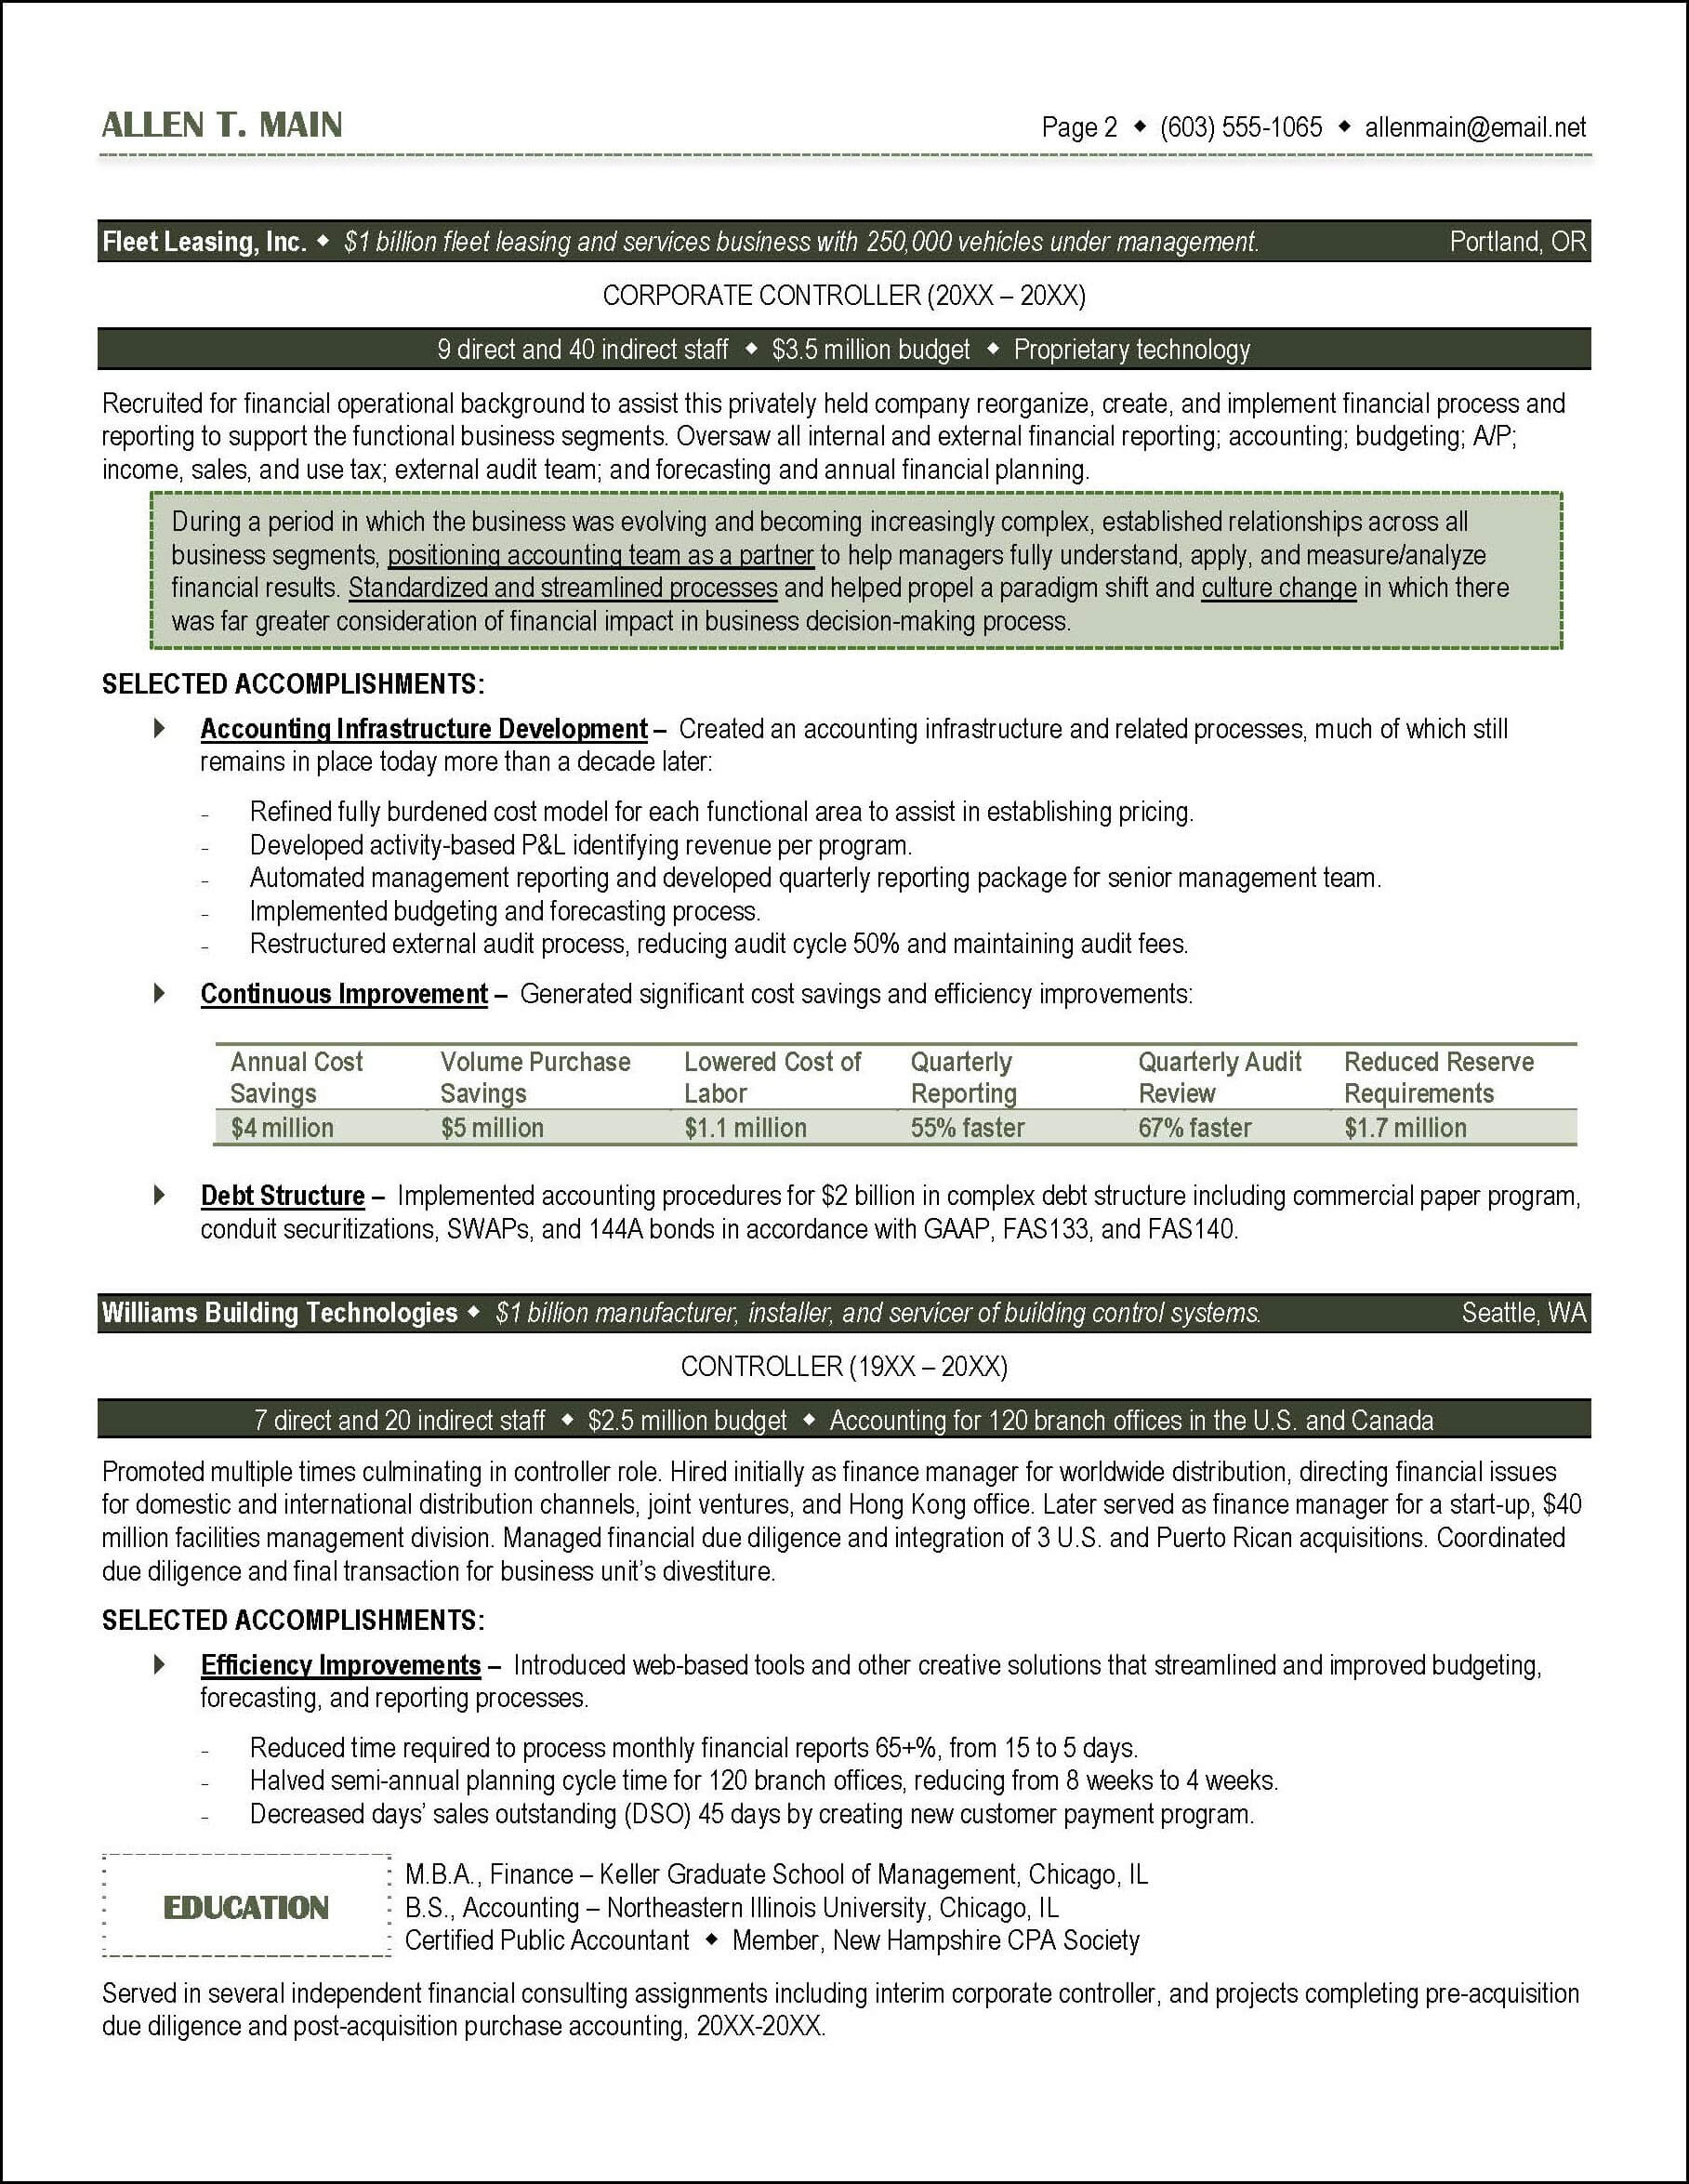 Accounting Resume Example Page 2  Sample Resume For Accounting